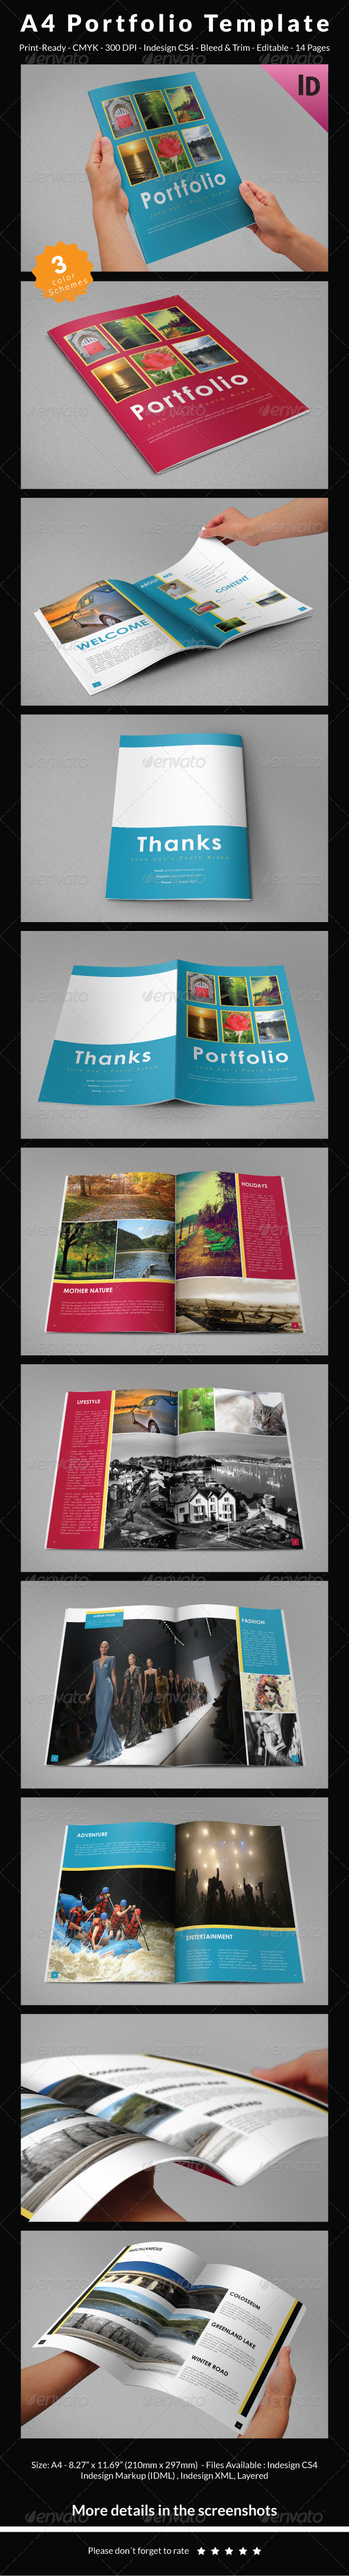 GraphicRiver A4 Portfolio Template 6804273